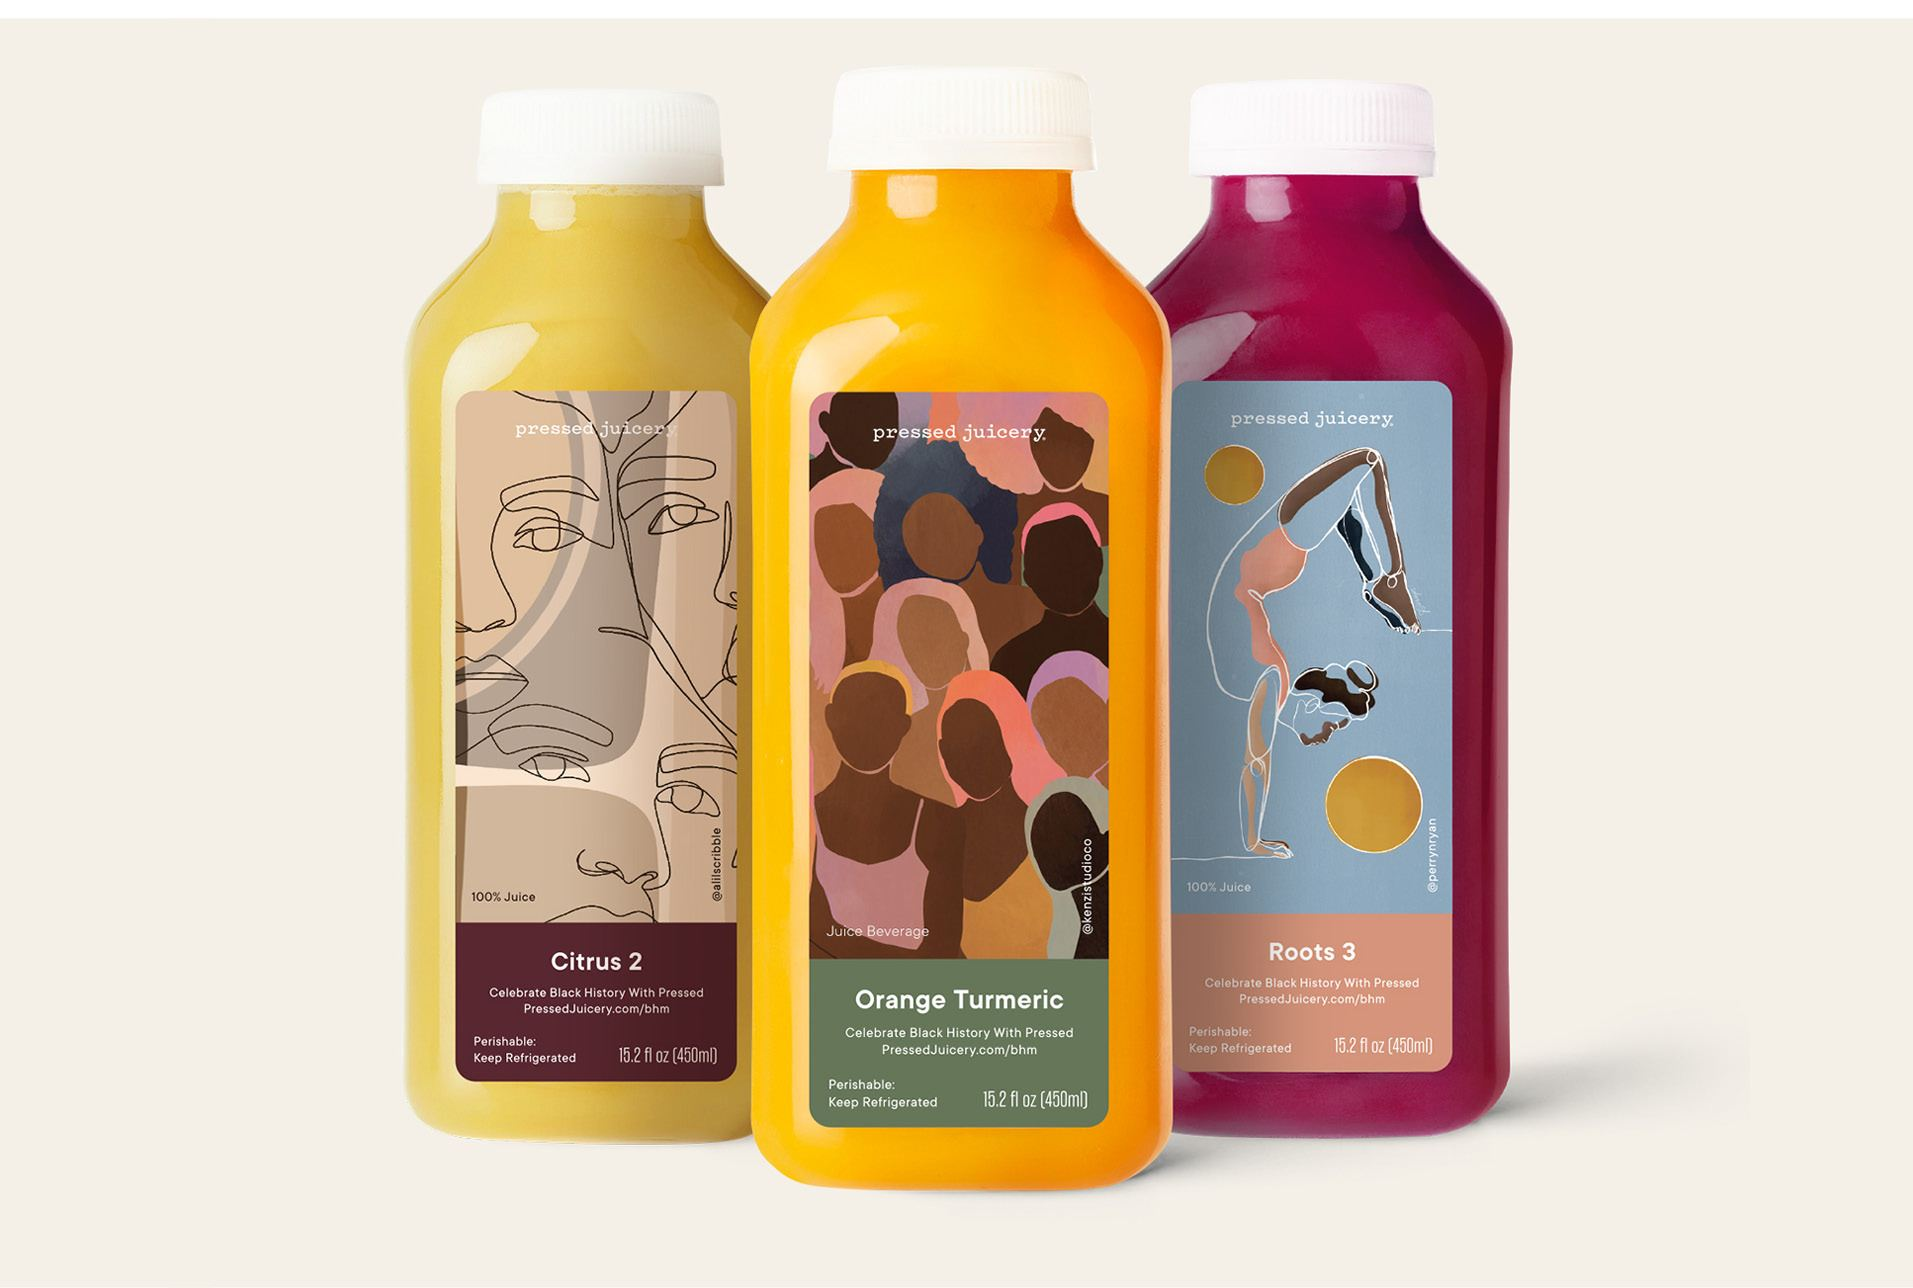 Black History Month Exclusives at Pressed Juicery